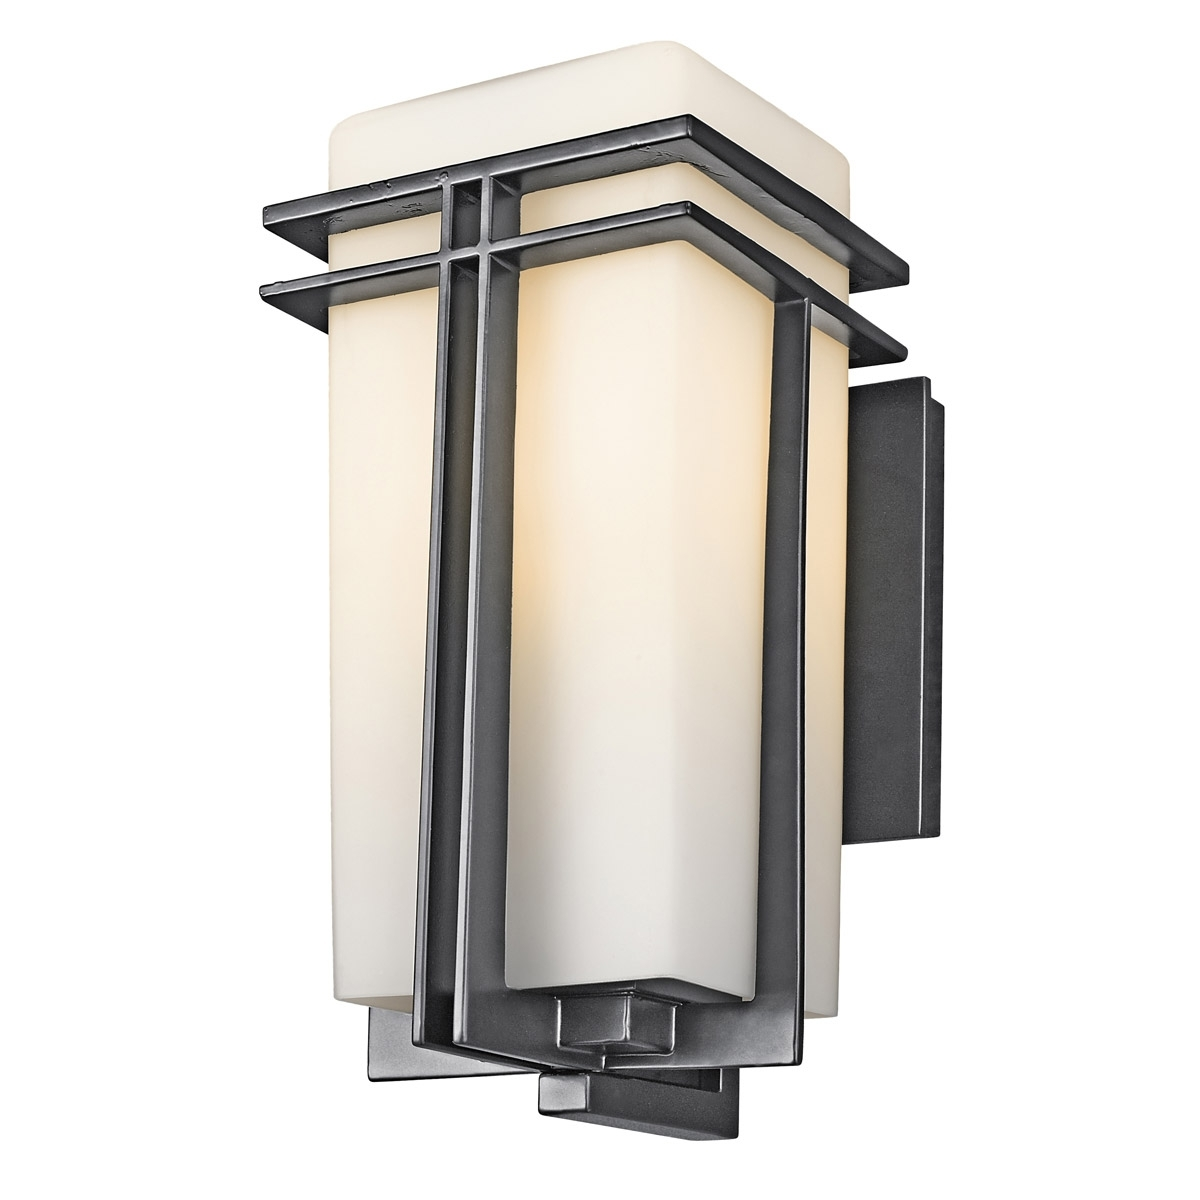 Transitional Outdoor Wall Lighting Pertaining To Well Known 49201Bk Tremillo Outdoor Wall Fixture (View 16 of 20)